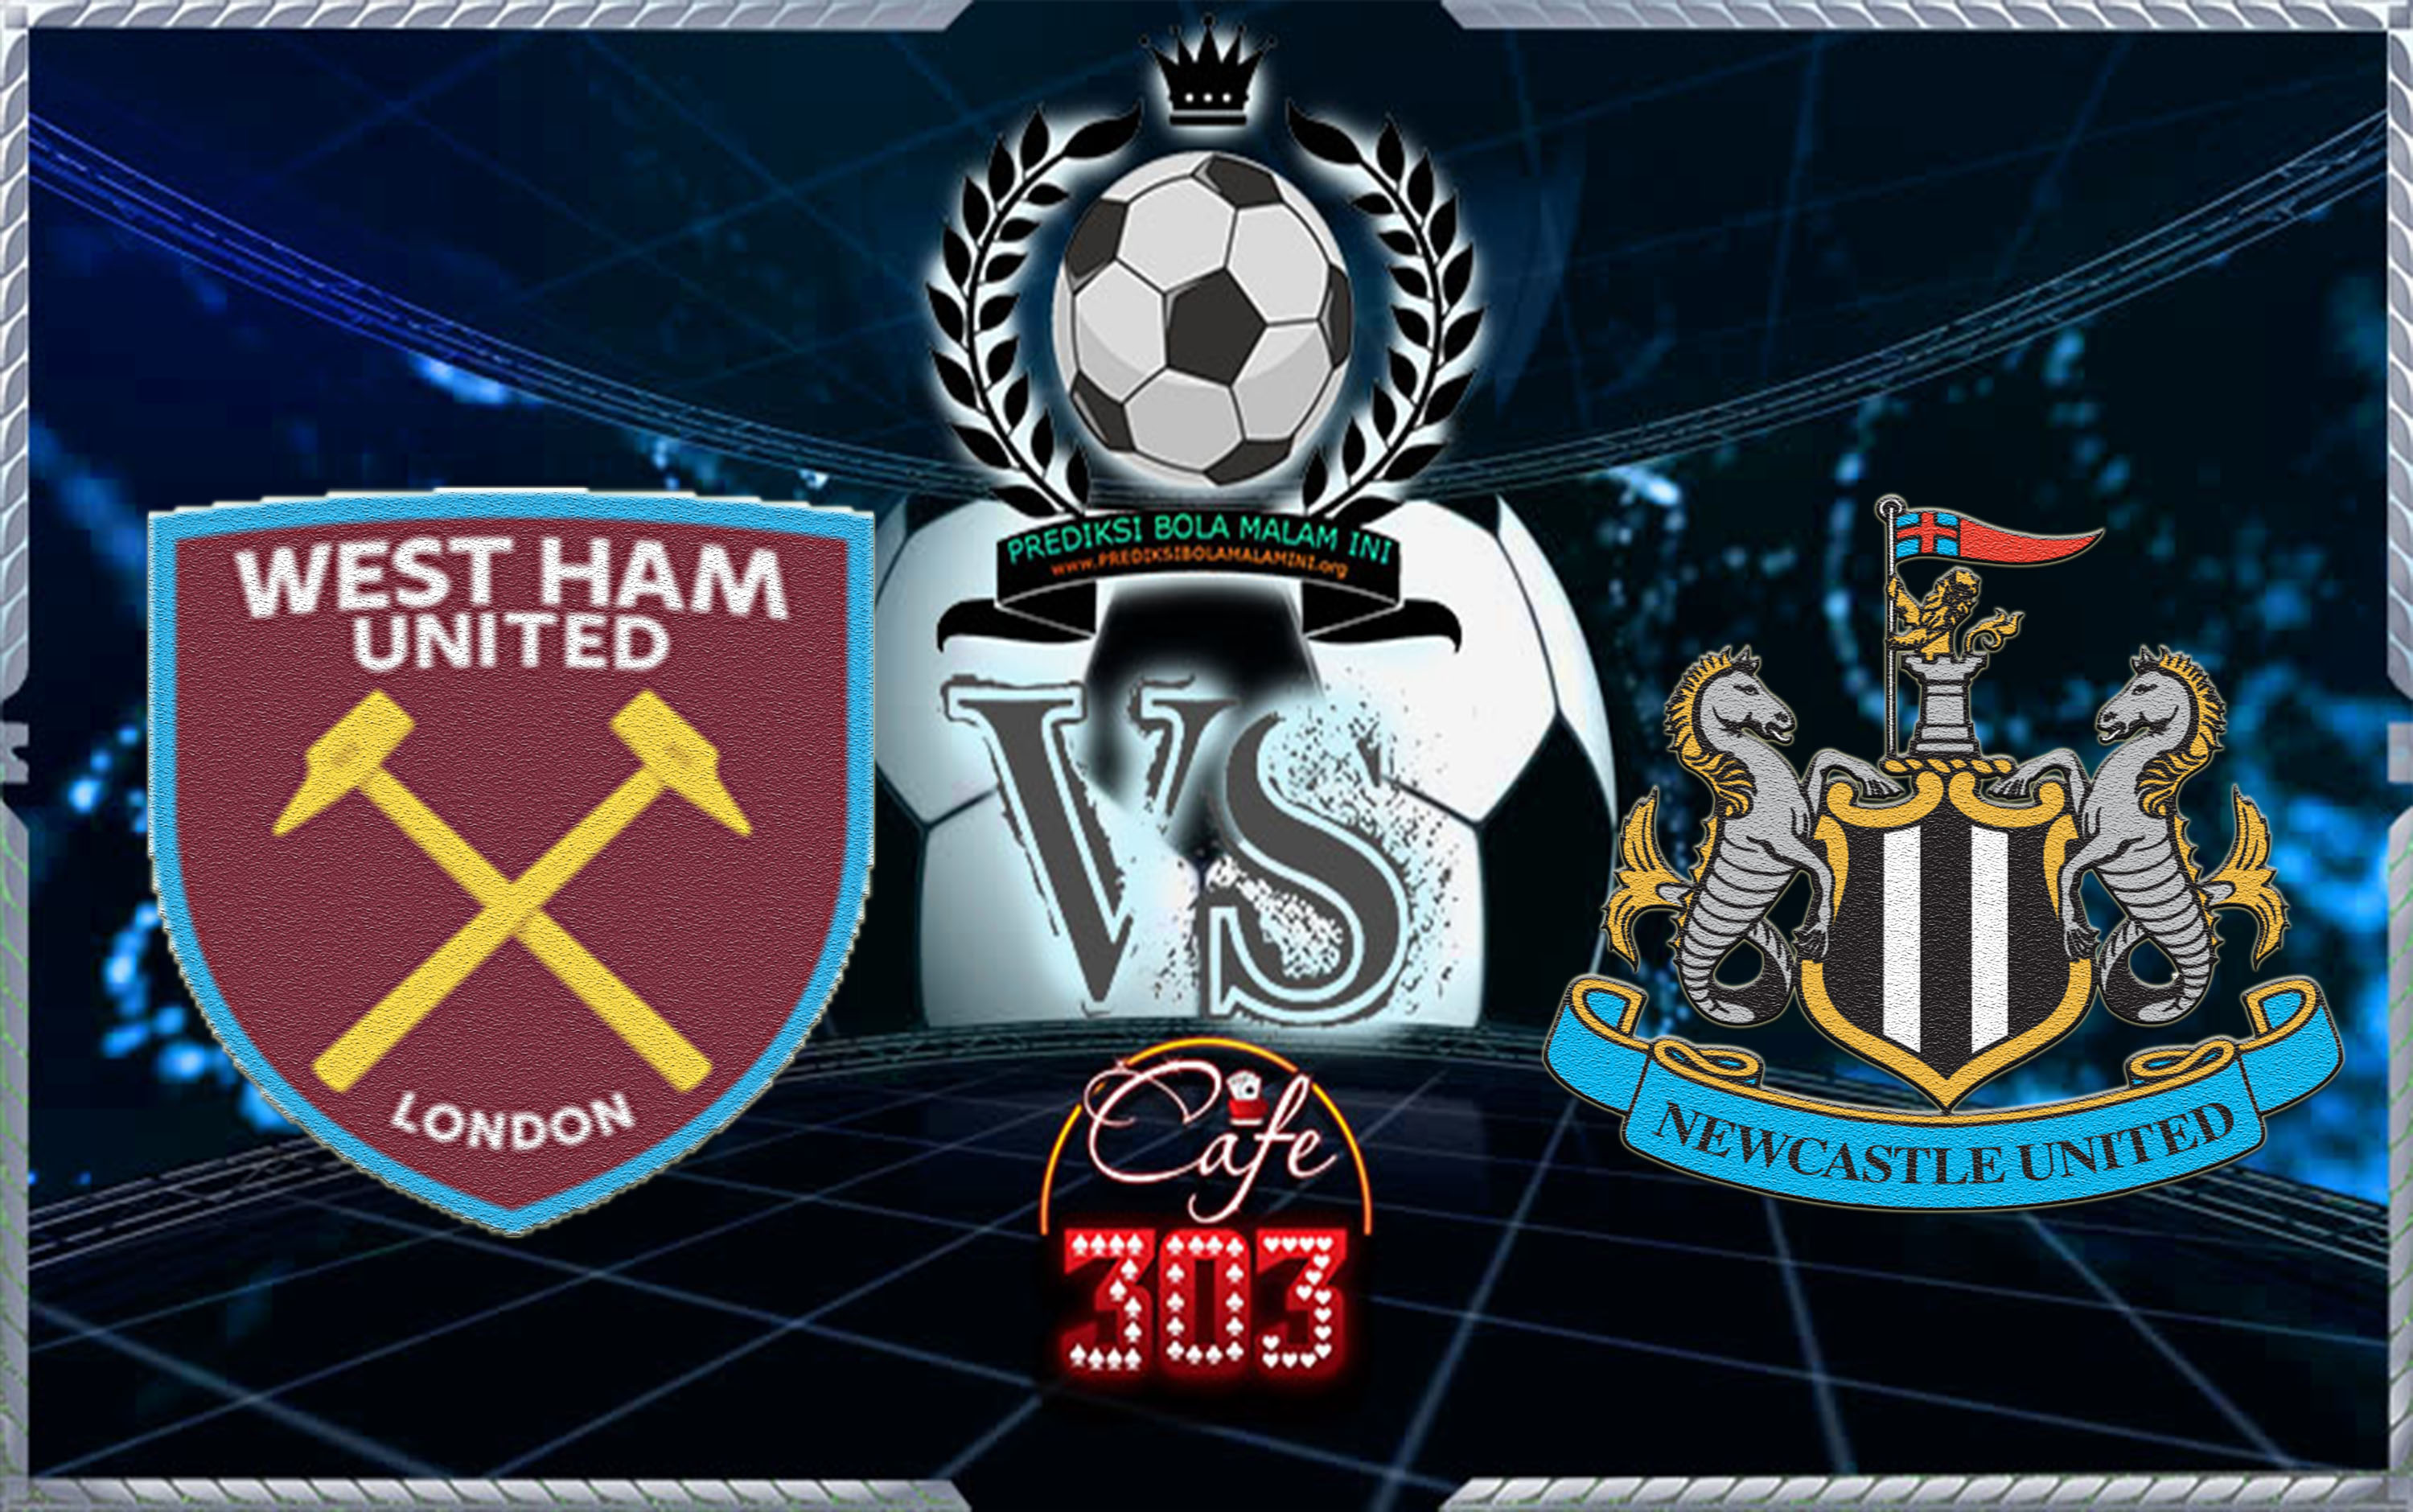 WEST HAM UNITED VS NEWCASTLE UNITED